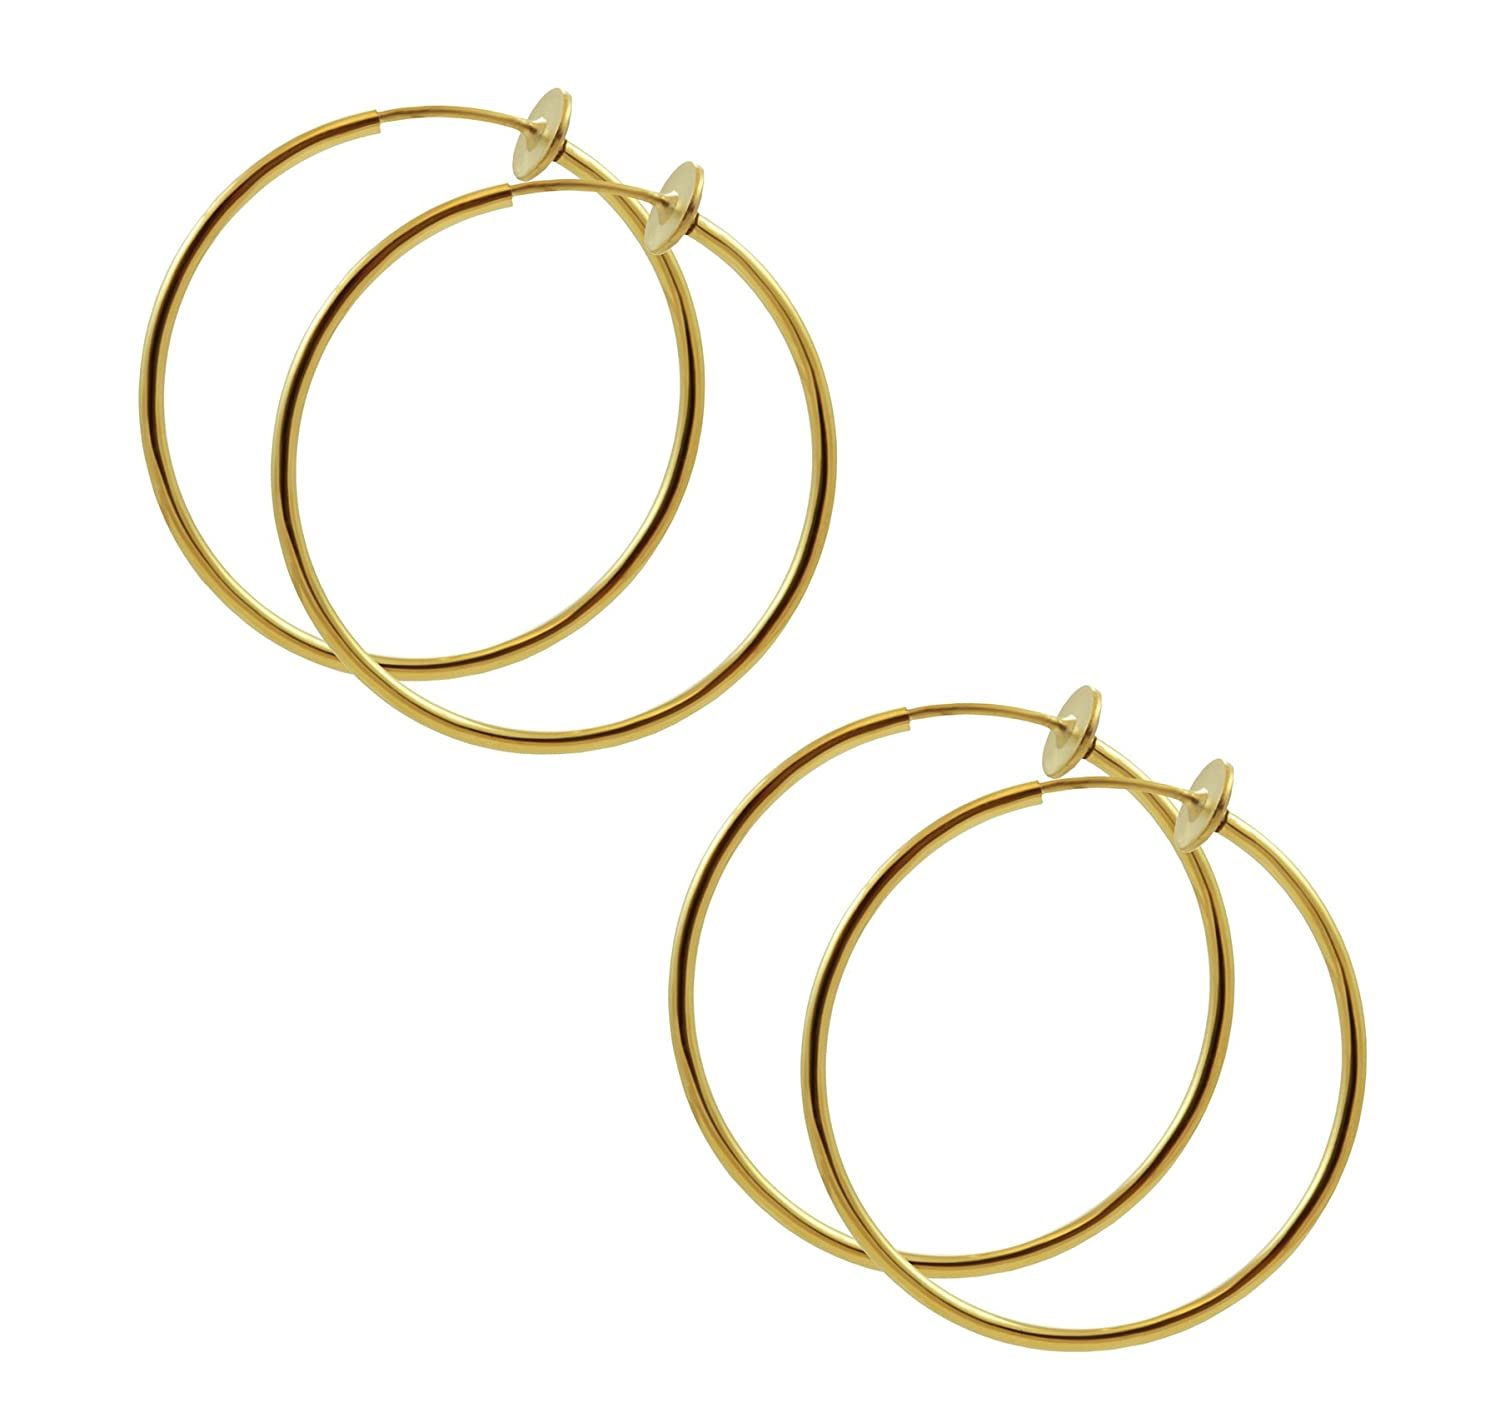 Men's Pirate Clip On Gold-Tone Hoop Earrings Two Pairs - DeluxeAdultCostumes.com